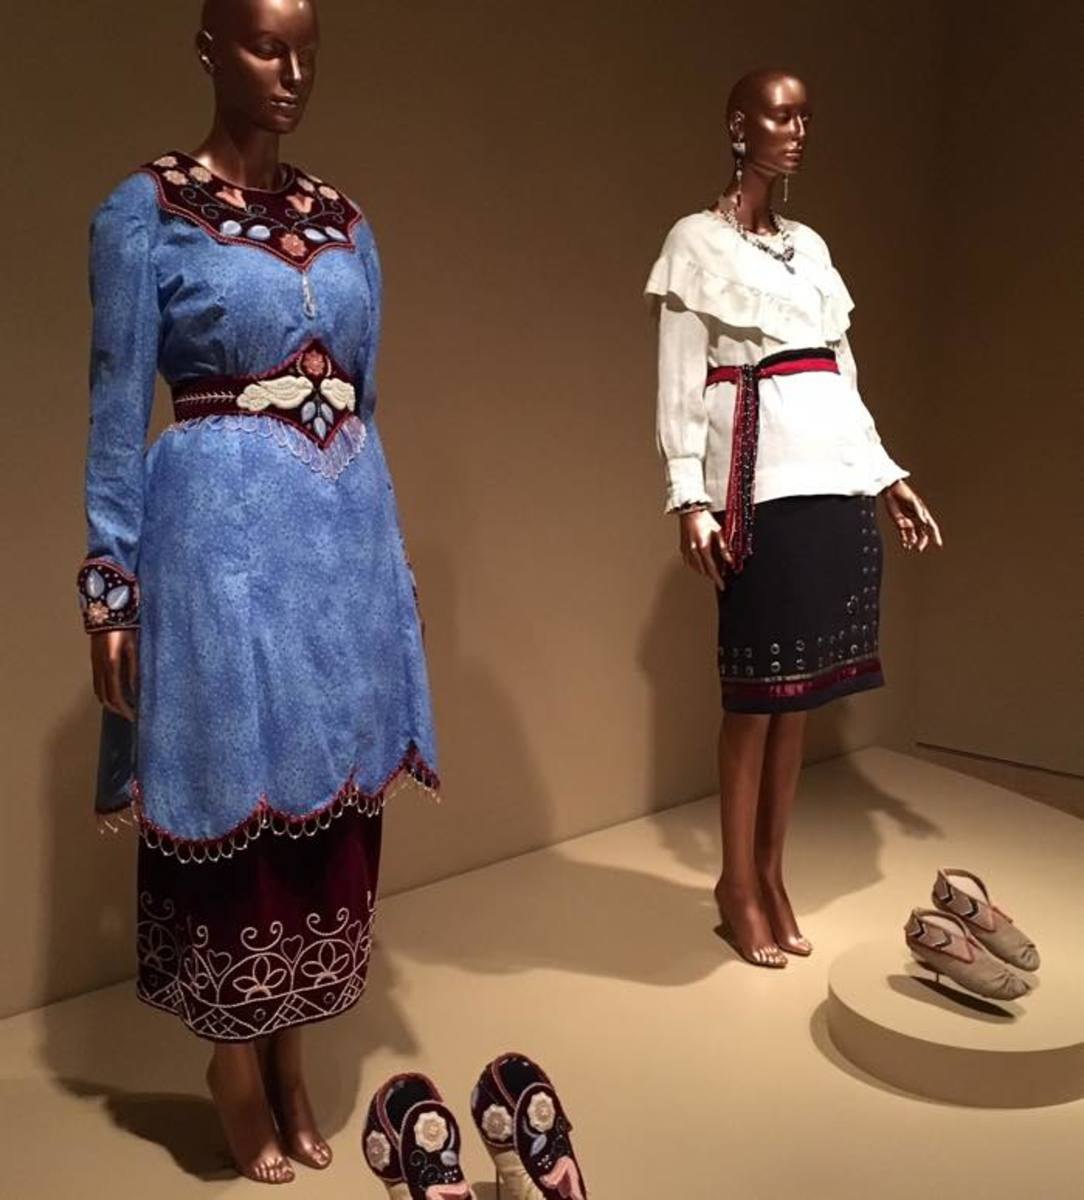 """The ensemble on the left, titled Emma, by Niio Perkins (Akwesasne Mohawk) shows the endless possibility of beadwork, which is rooted in her Native heritage. The ensemble on the right is by Elizabeth James-Perry (Aquinnah Wampanoag). """"The colors, textures, the creative rhythm of someone… weaving and threading and beading together a certain pattern; it's like telling a story,"""" James-Perry said. """"Being part of that storytelling process is central to my identity as a Wampanoag woman."""""""